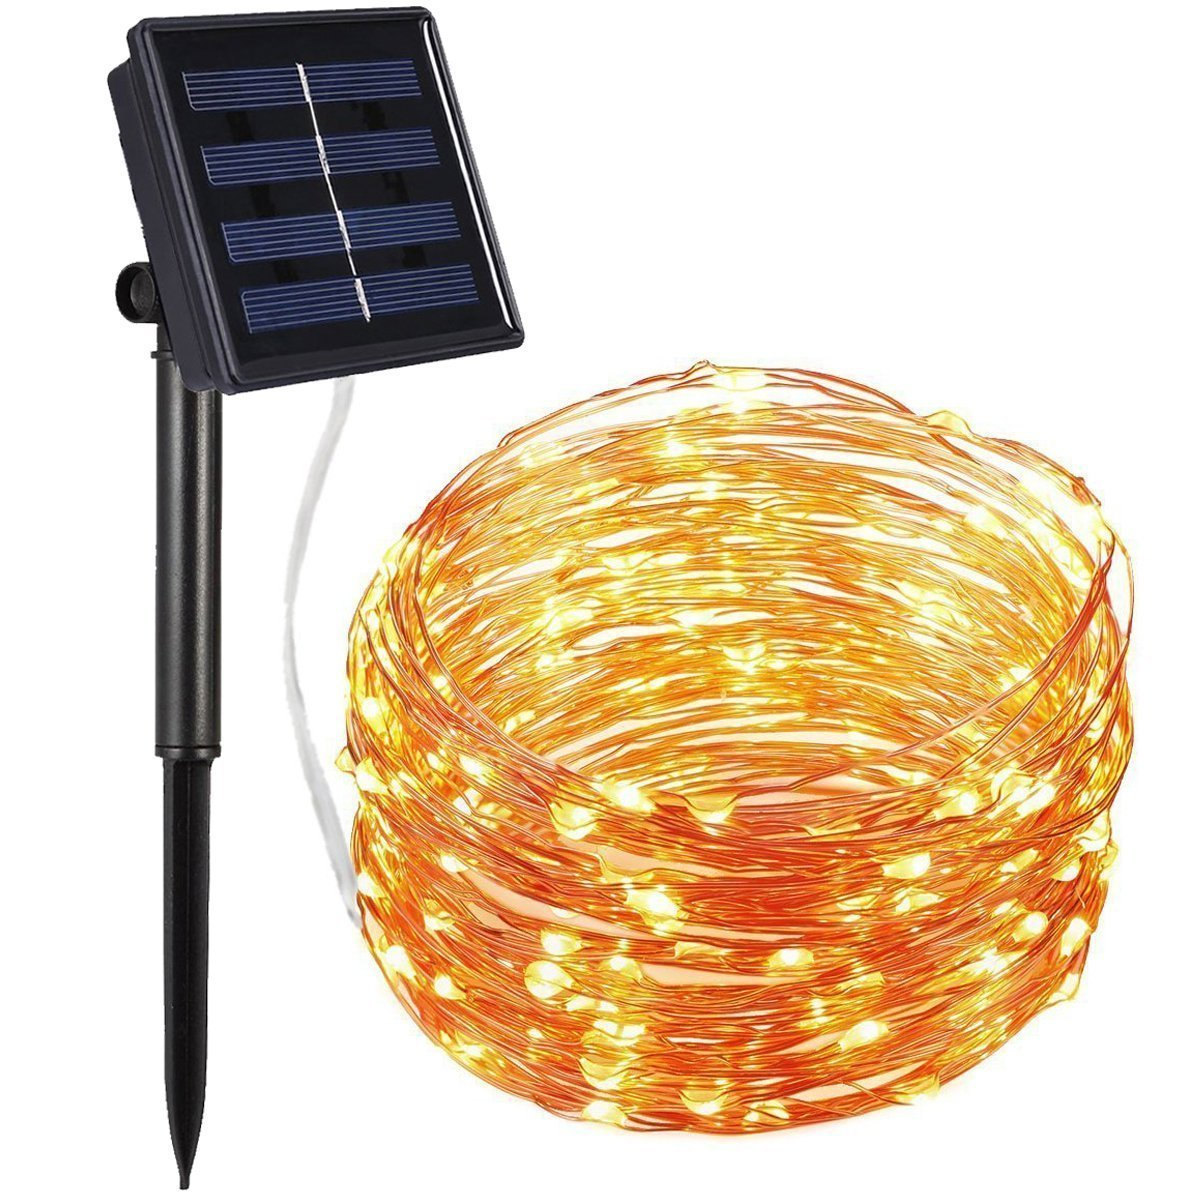 Best Solar Outdoor Lights Ledwatcher Sunny Light Gardensolar Yard Powered Lighting Amir String